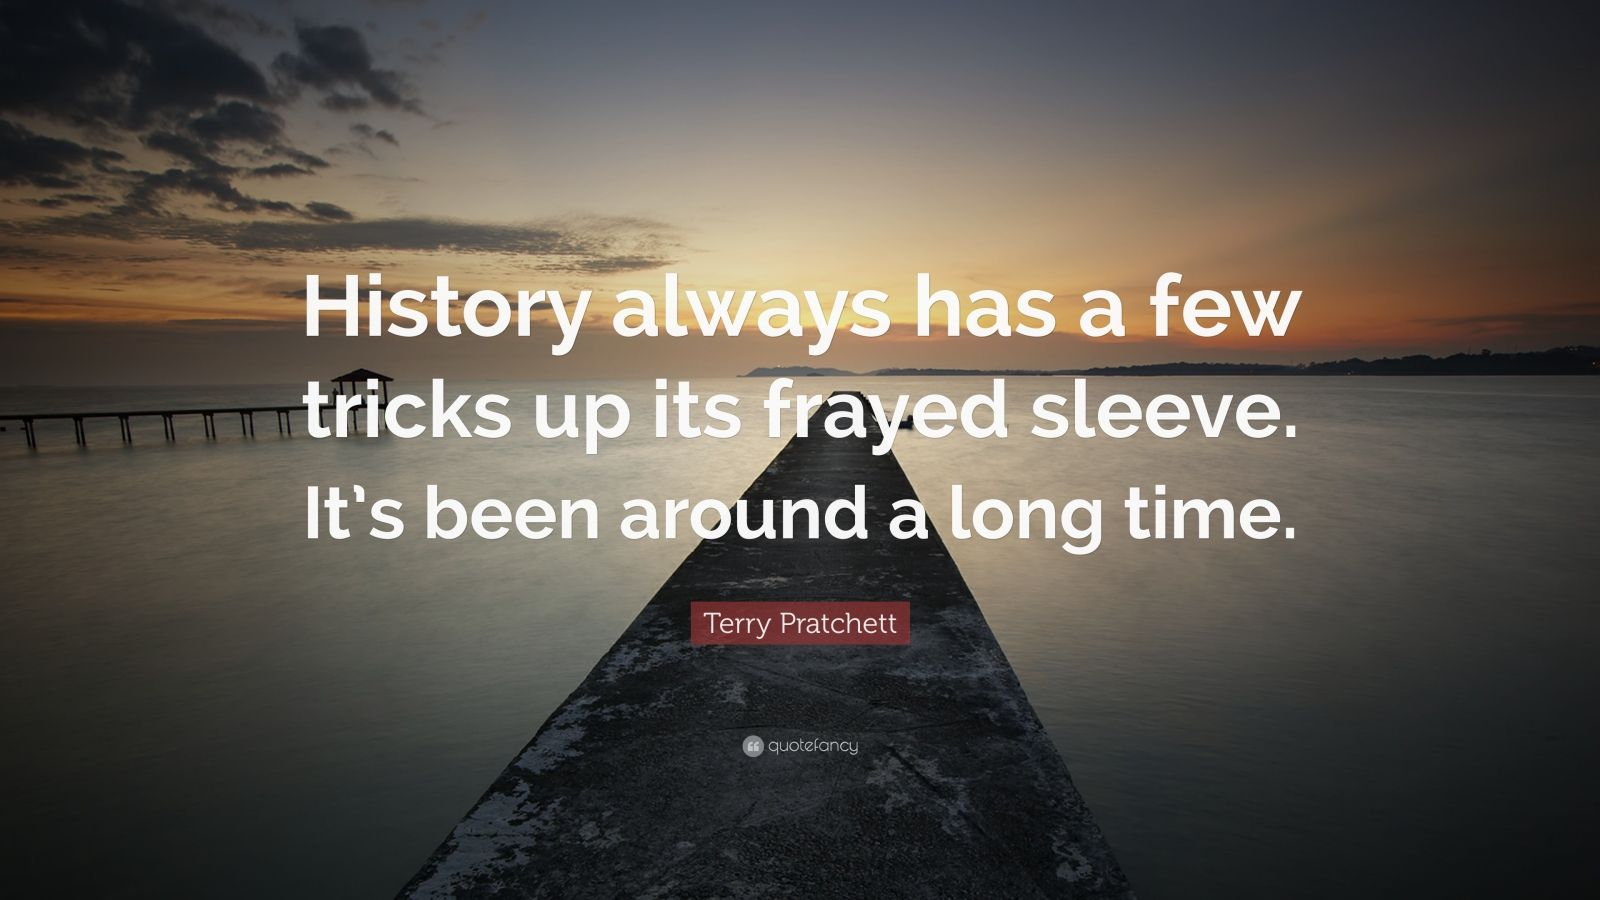 """Terry Pratchett Quote: """"History always has a few tricks up its frayed sleeve. It's been around a long time."""""""